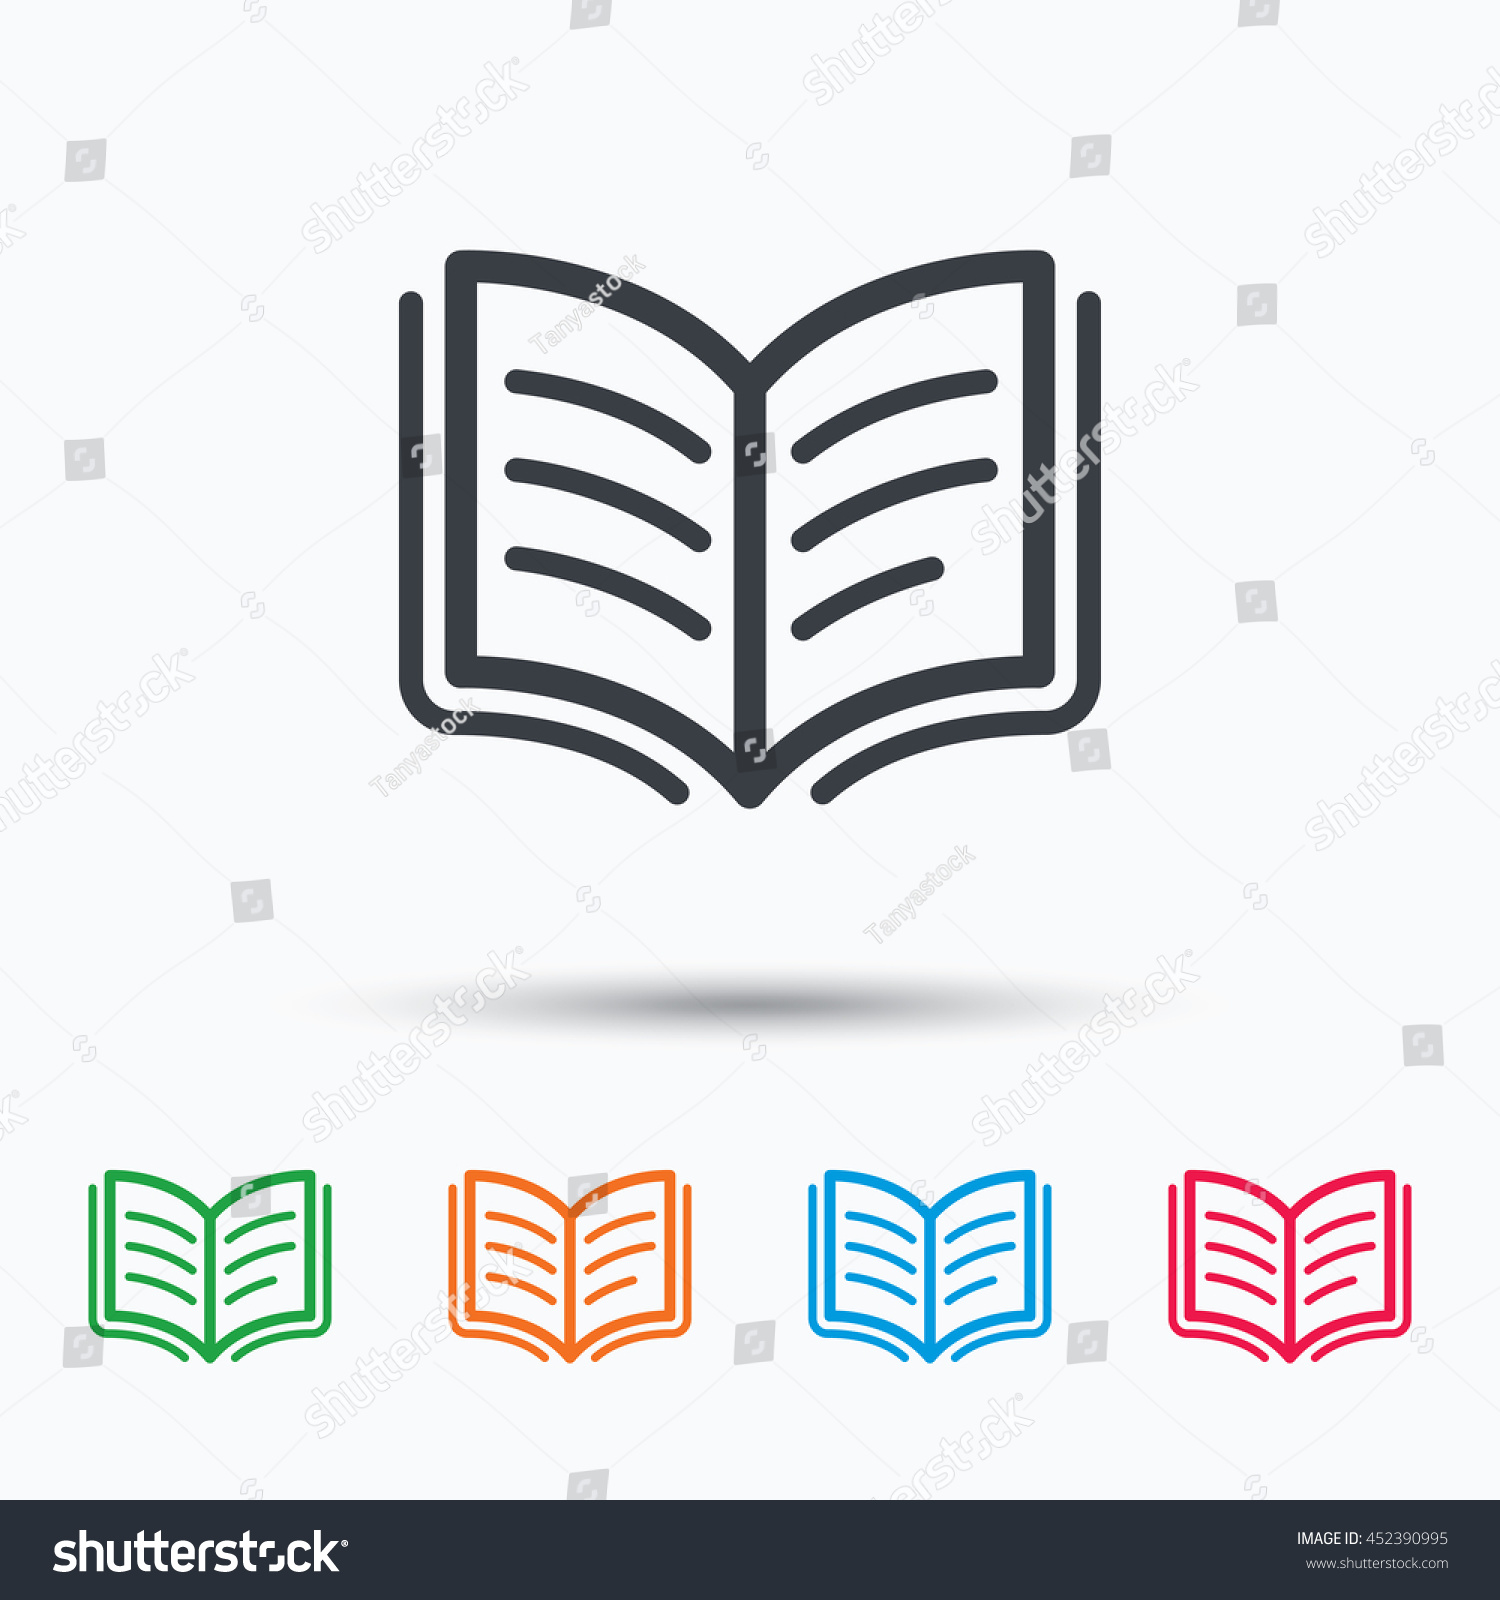 book icon study literature sign education stock vector  study literature sign education textbook symbol colored flat web icon on